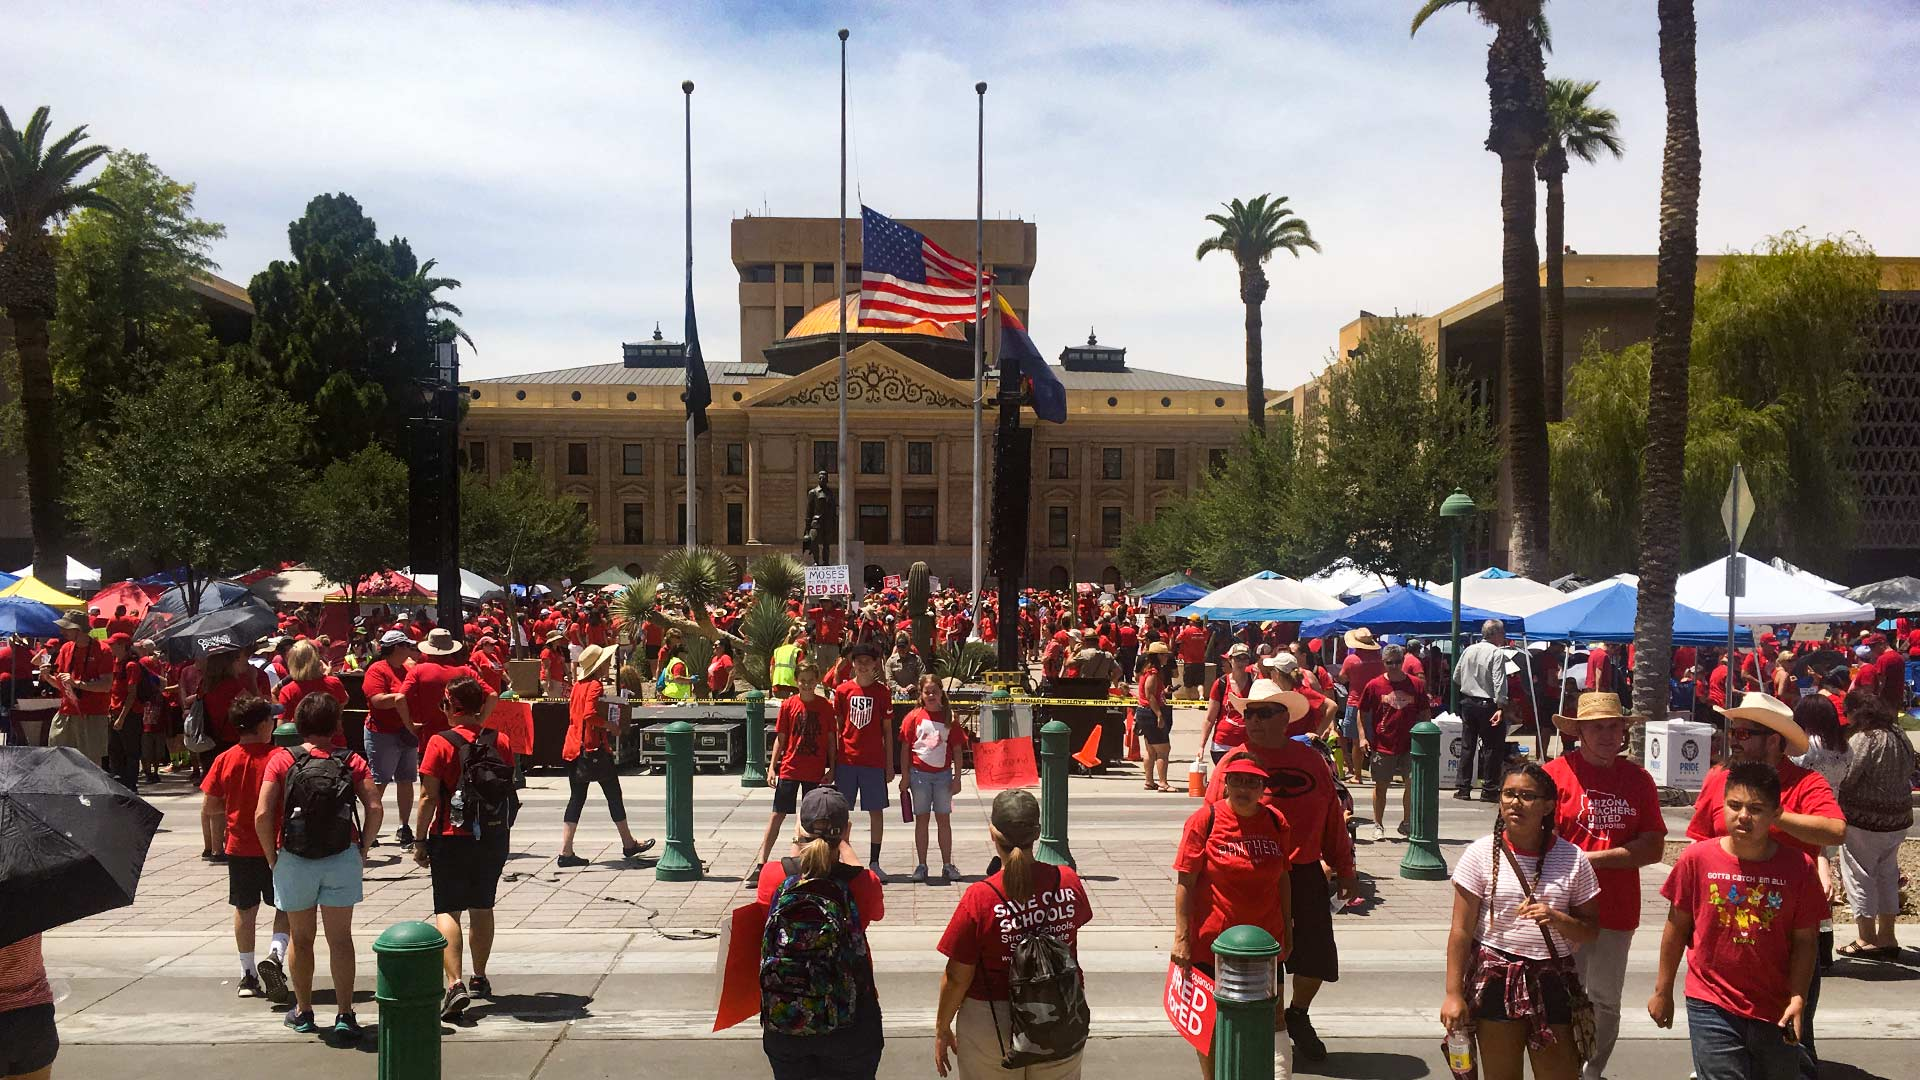 #RedForEd demonstrators at the Arizona Capitol, April 30. The protests continued a walkout that started the previous Thursday to demand education funding. Flags in the photo were